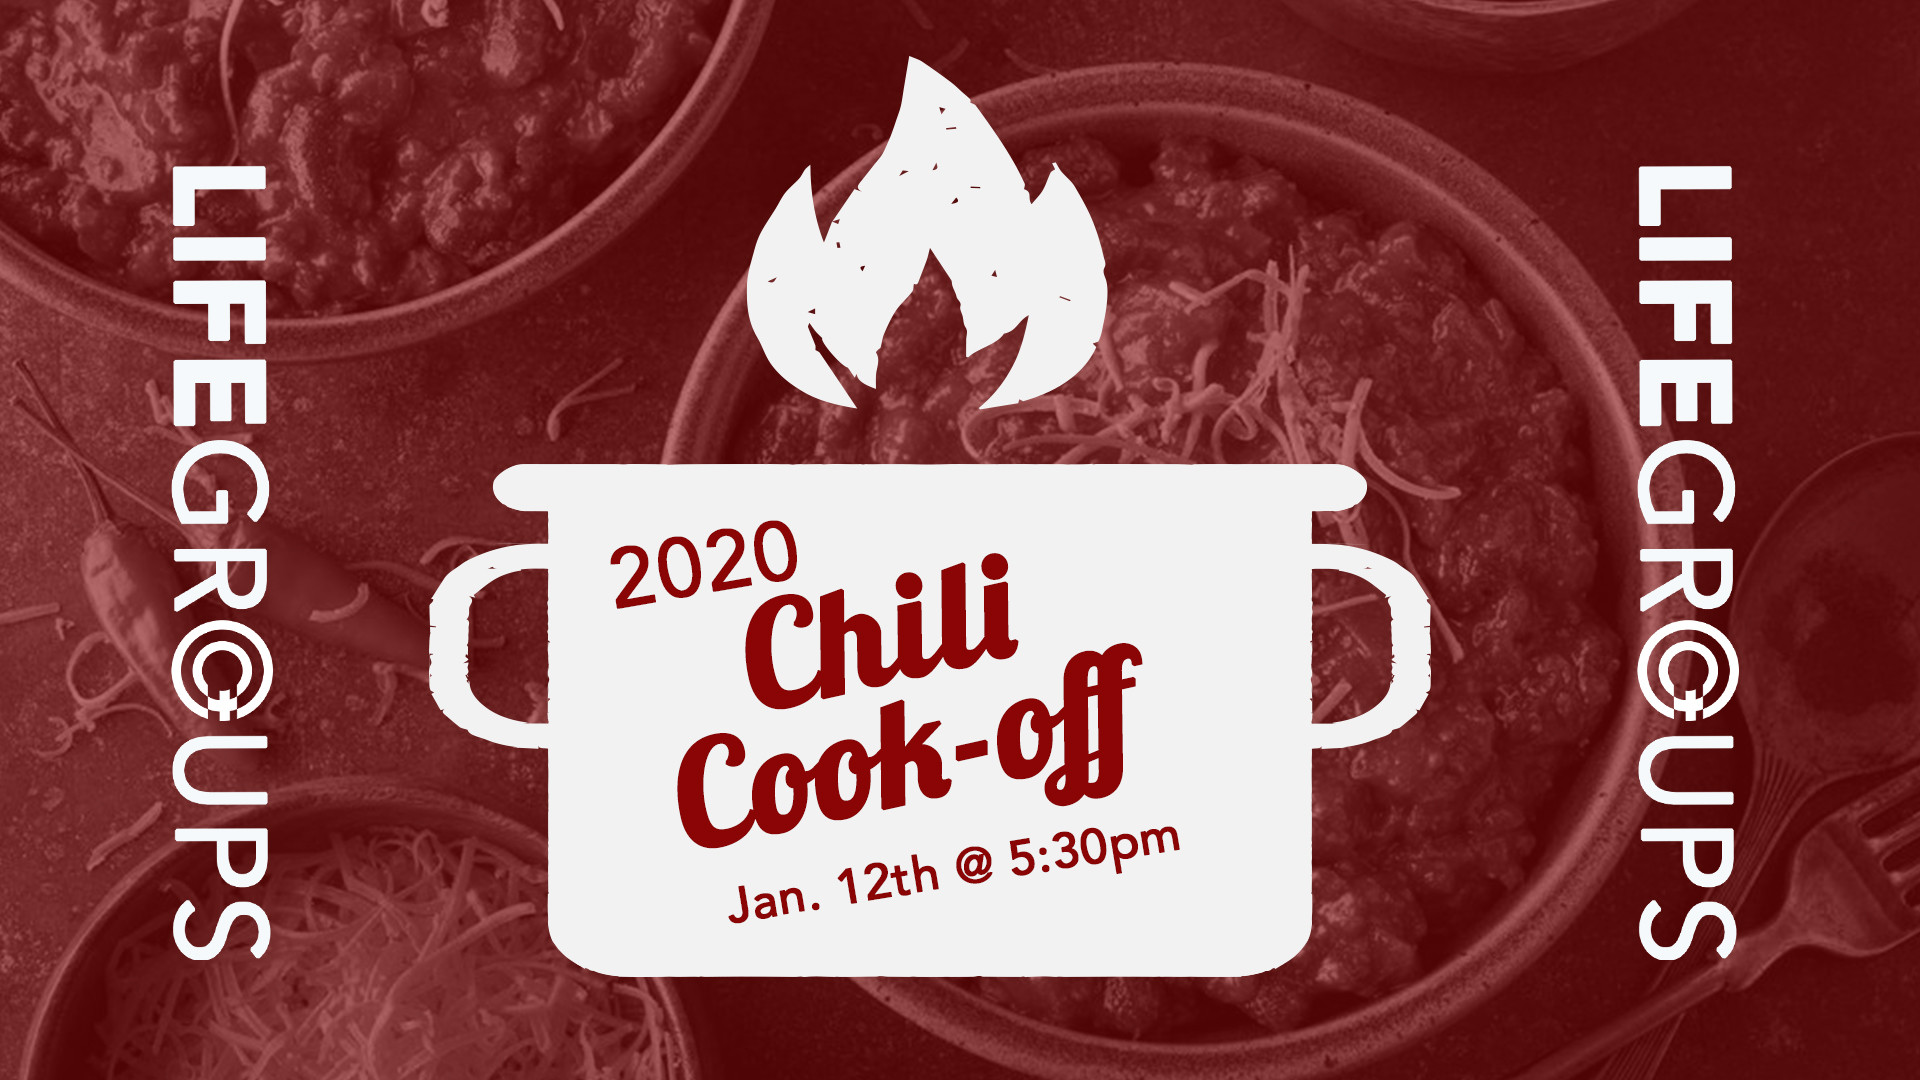 LifeGroups Chili Cook-off